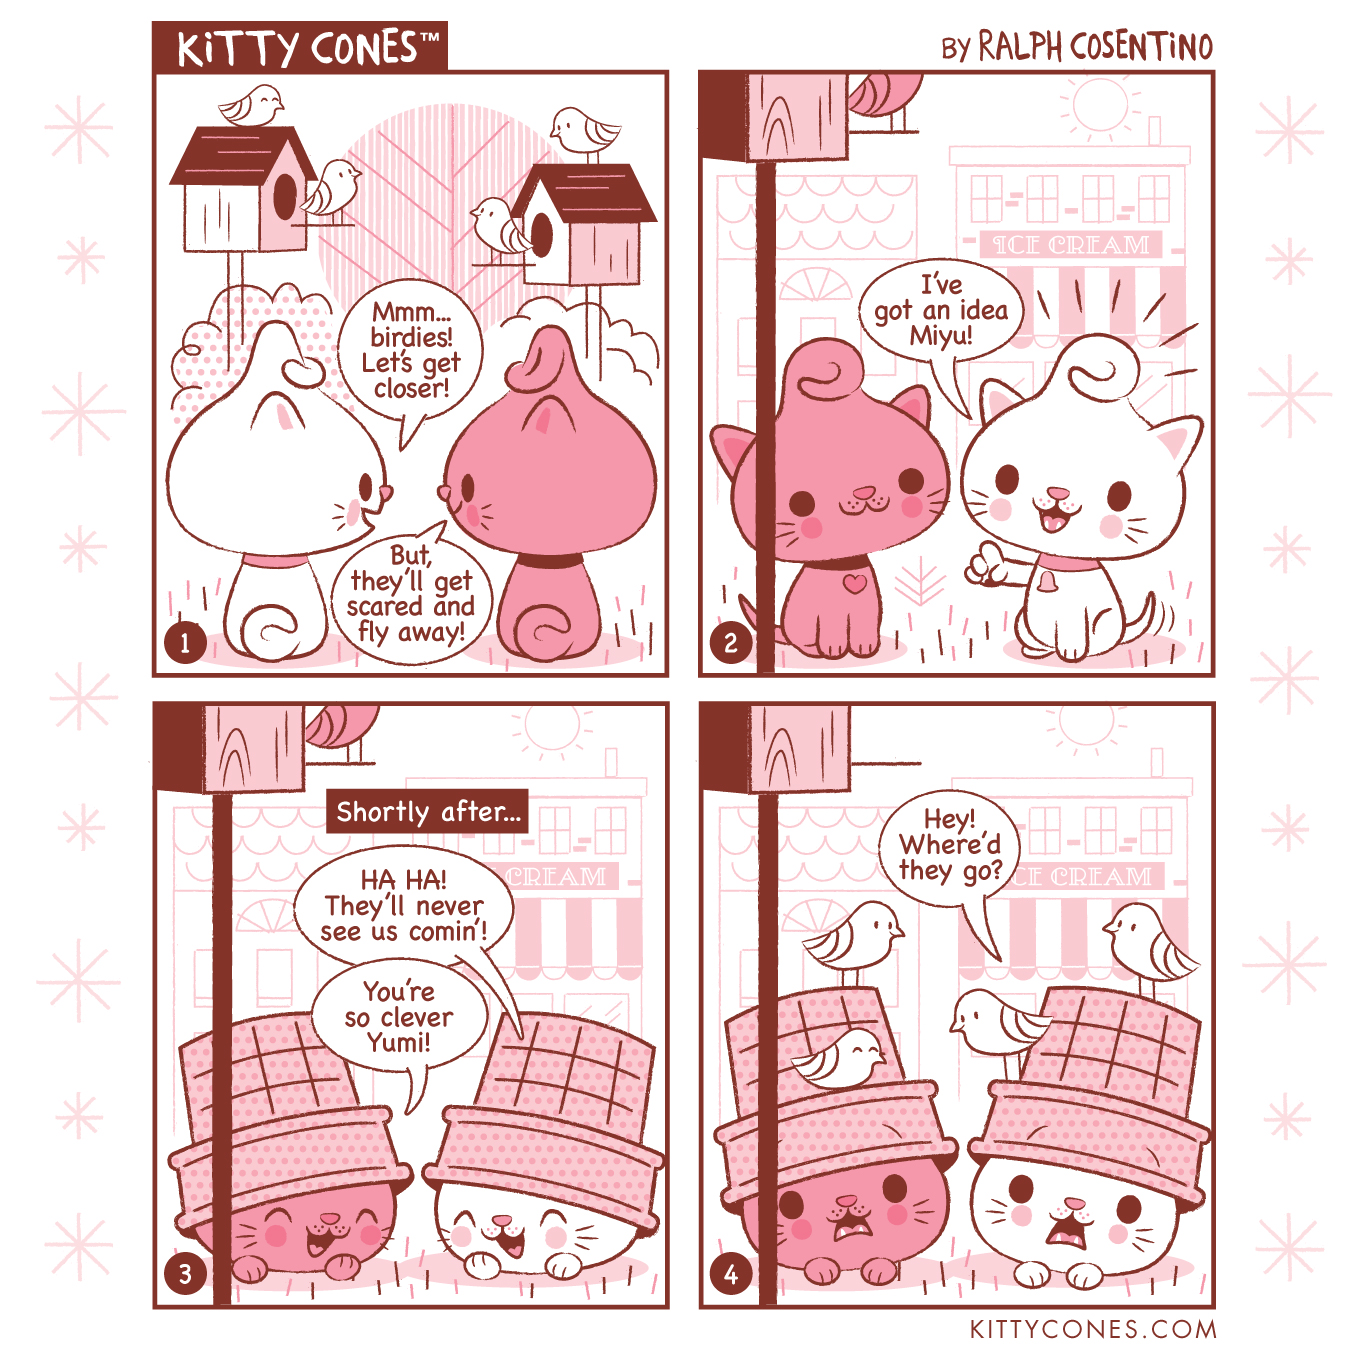 Kitty Cones Comic Strip # 1